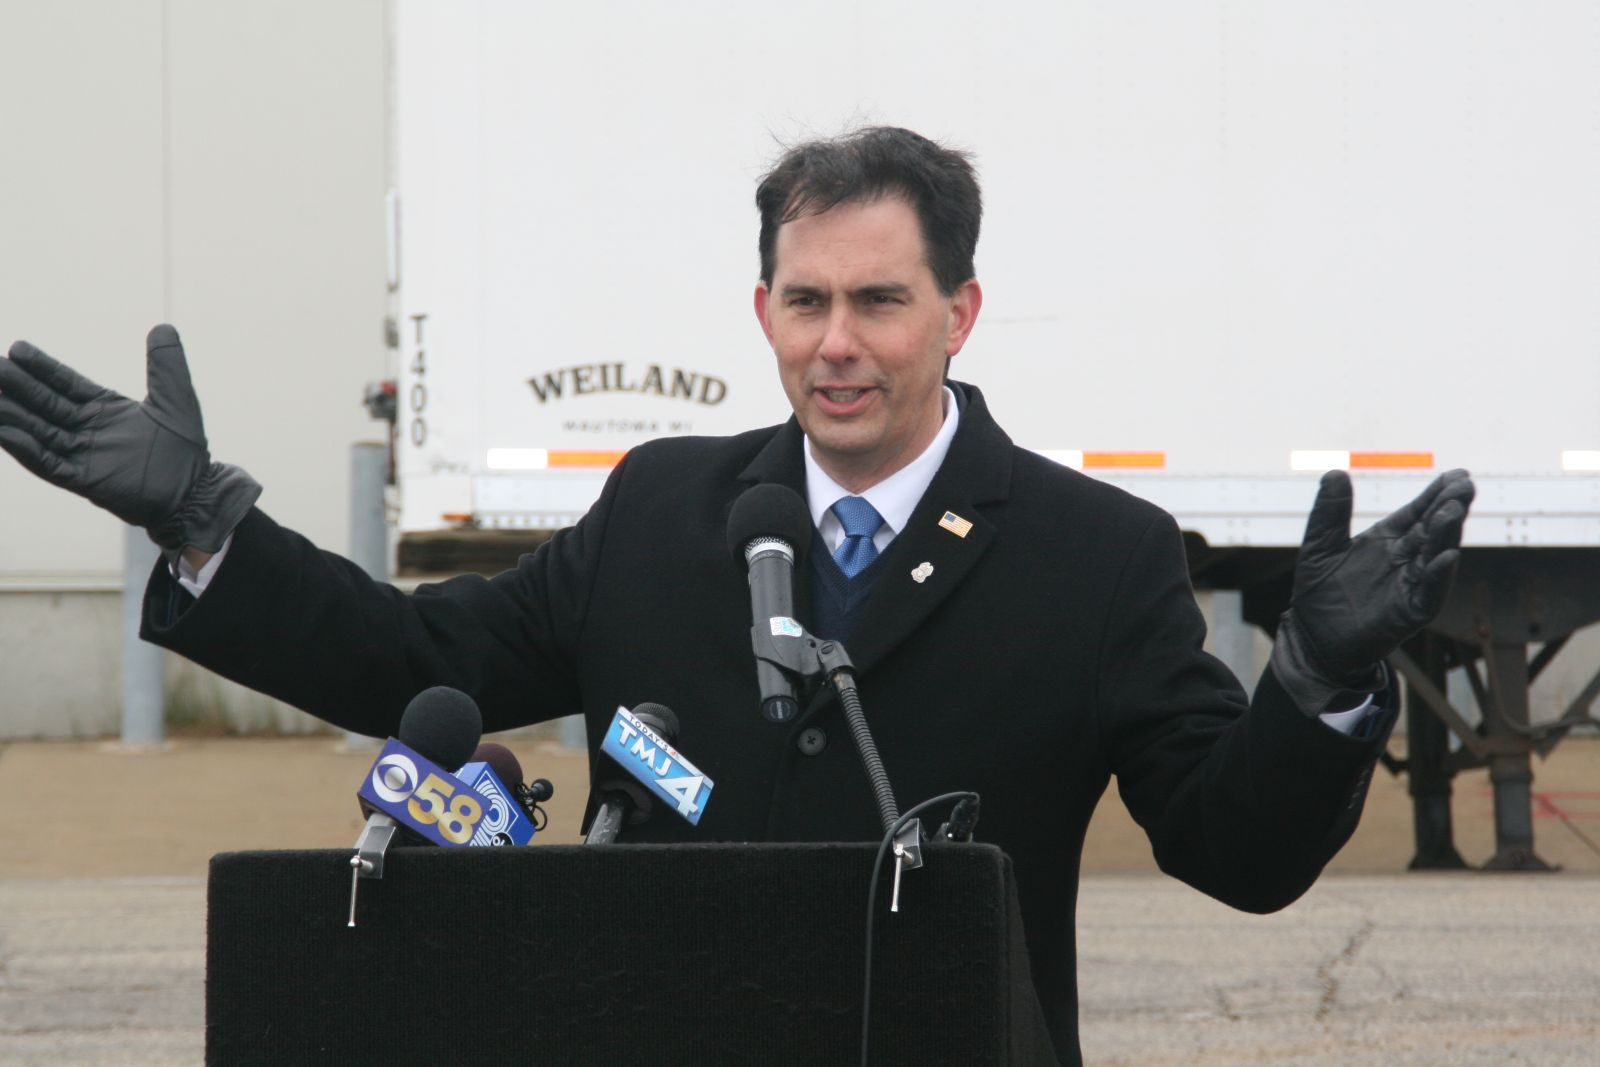 Gov. Walker proposes road delays, layoffs